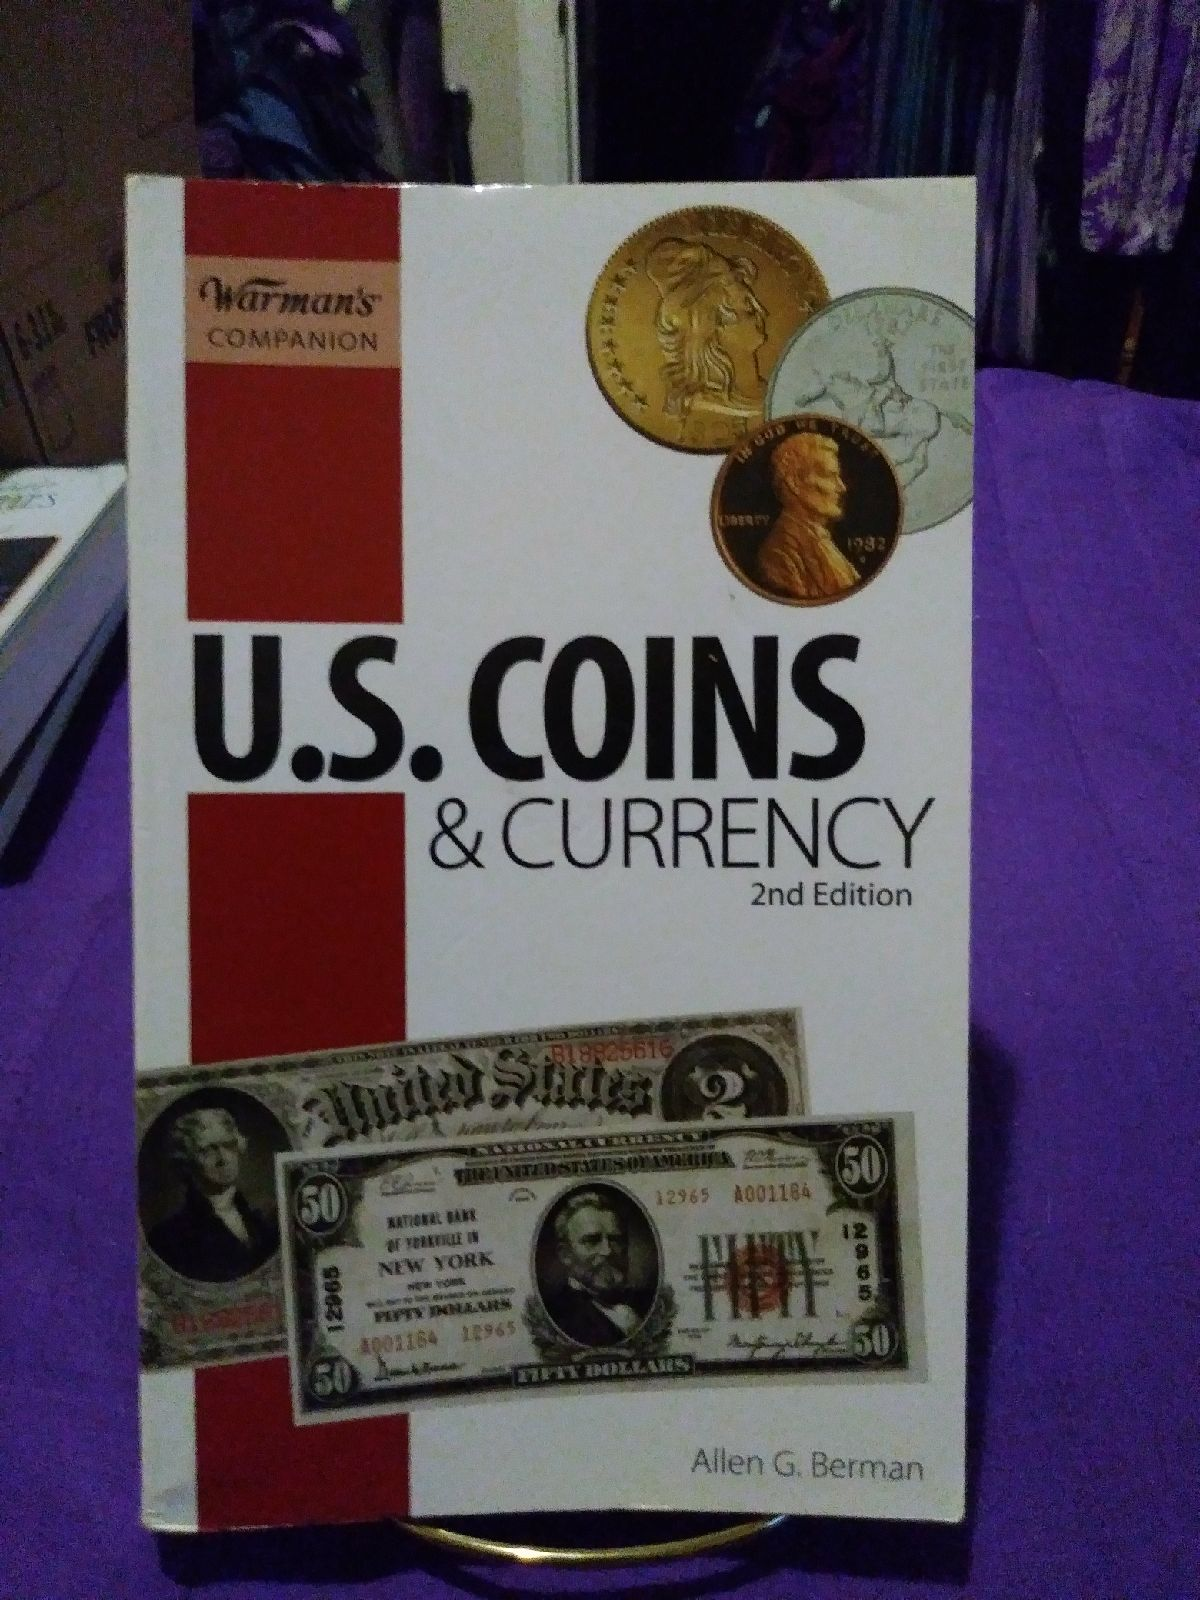 U.S. COINS & CURRENCY 2nd Edition